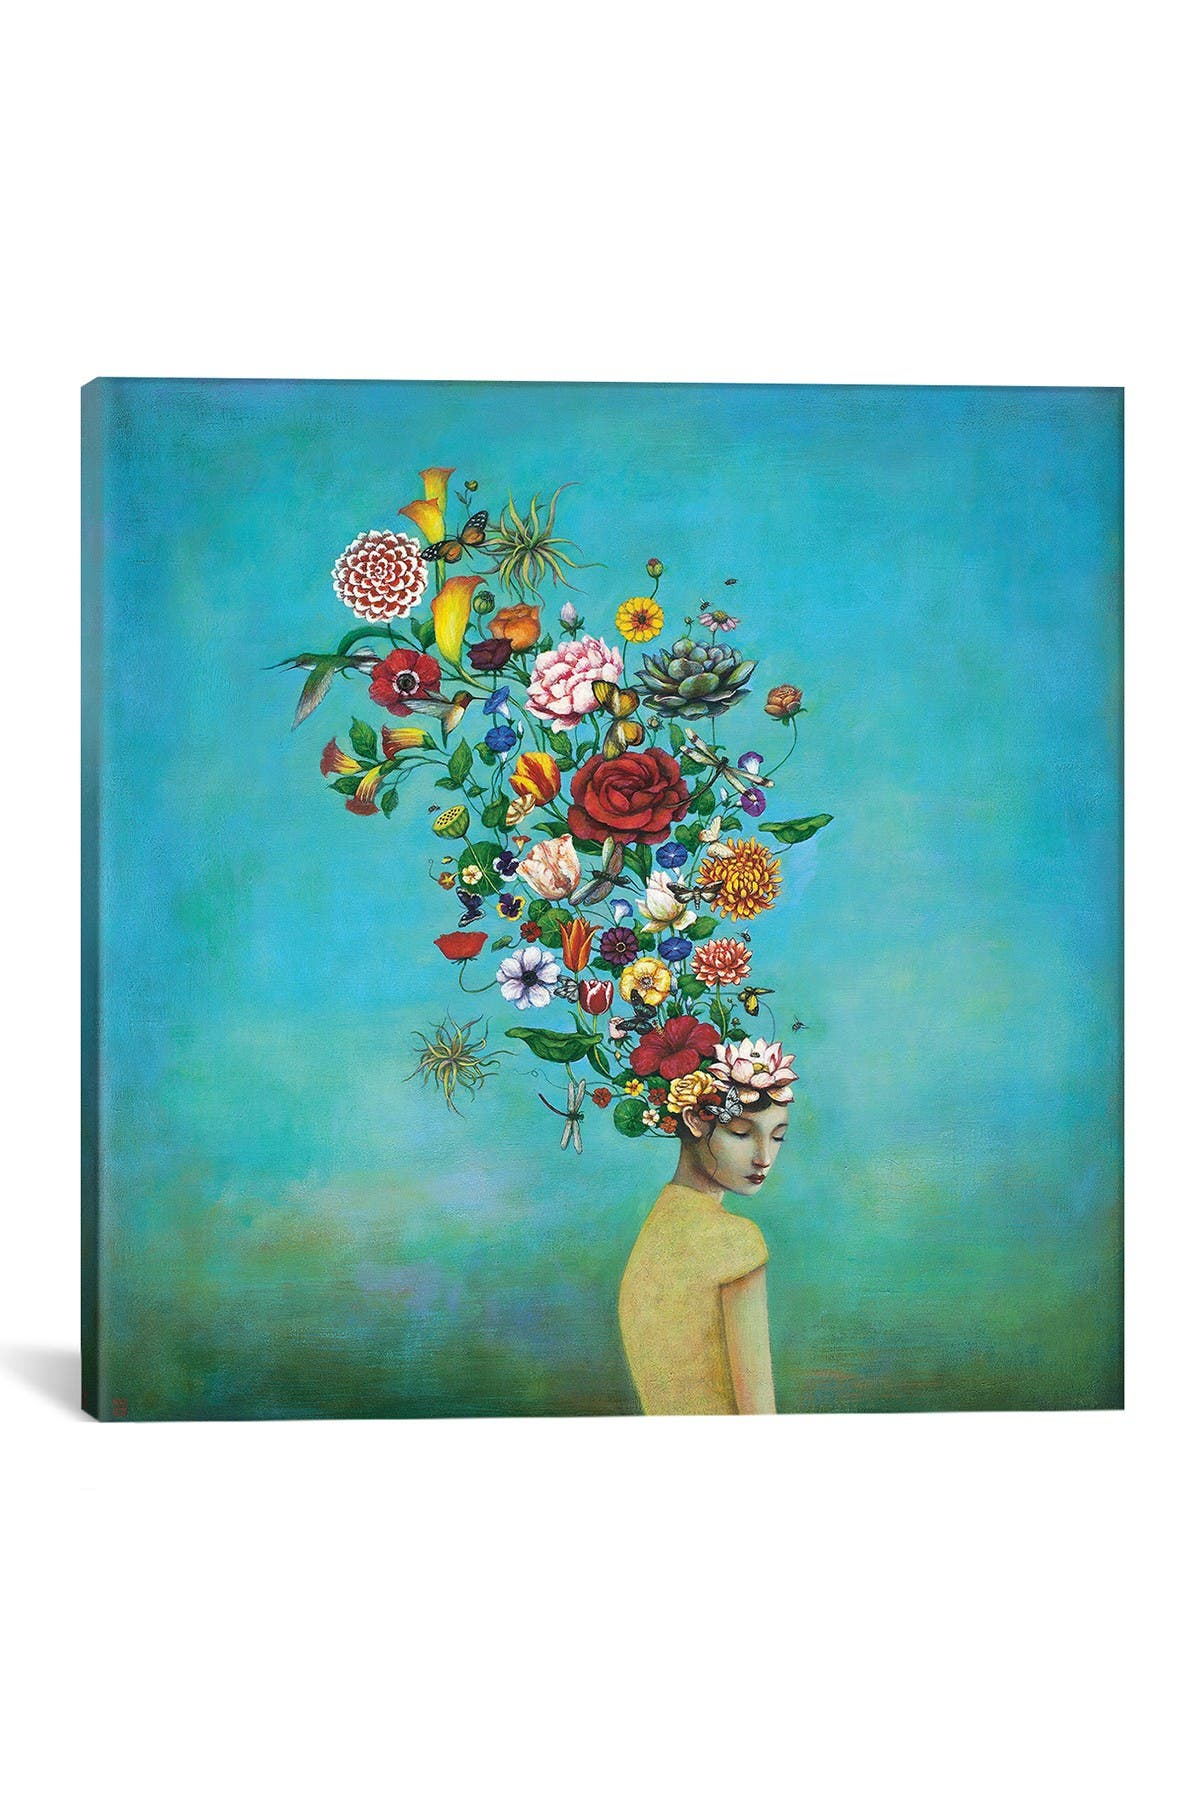 Image of iCanvas A Mindful Garden by Duy Huynh Wall Art